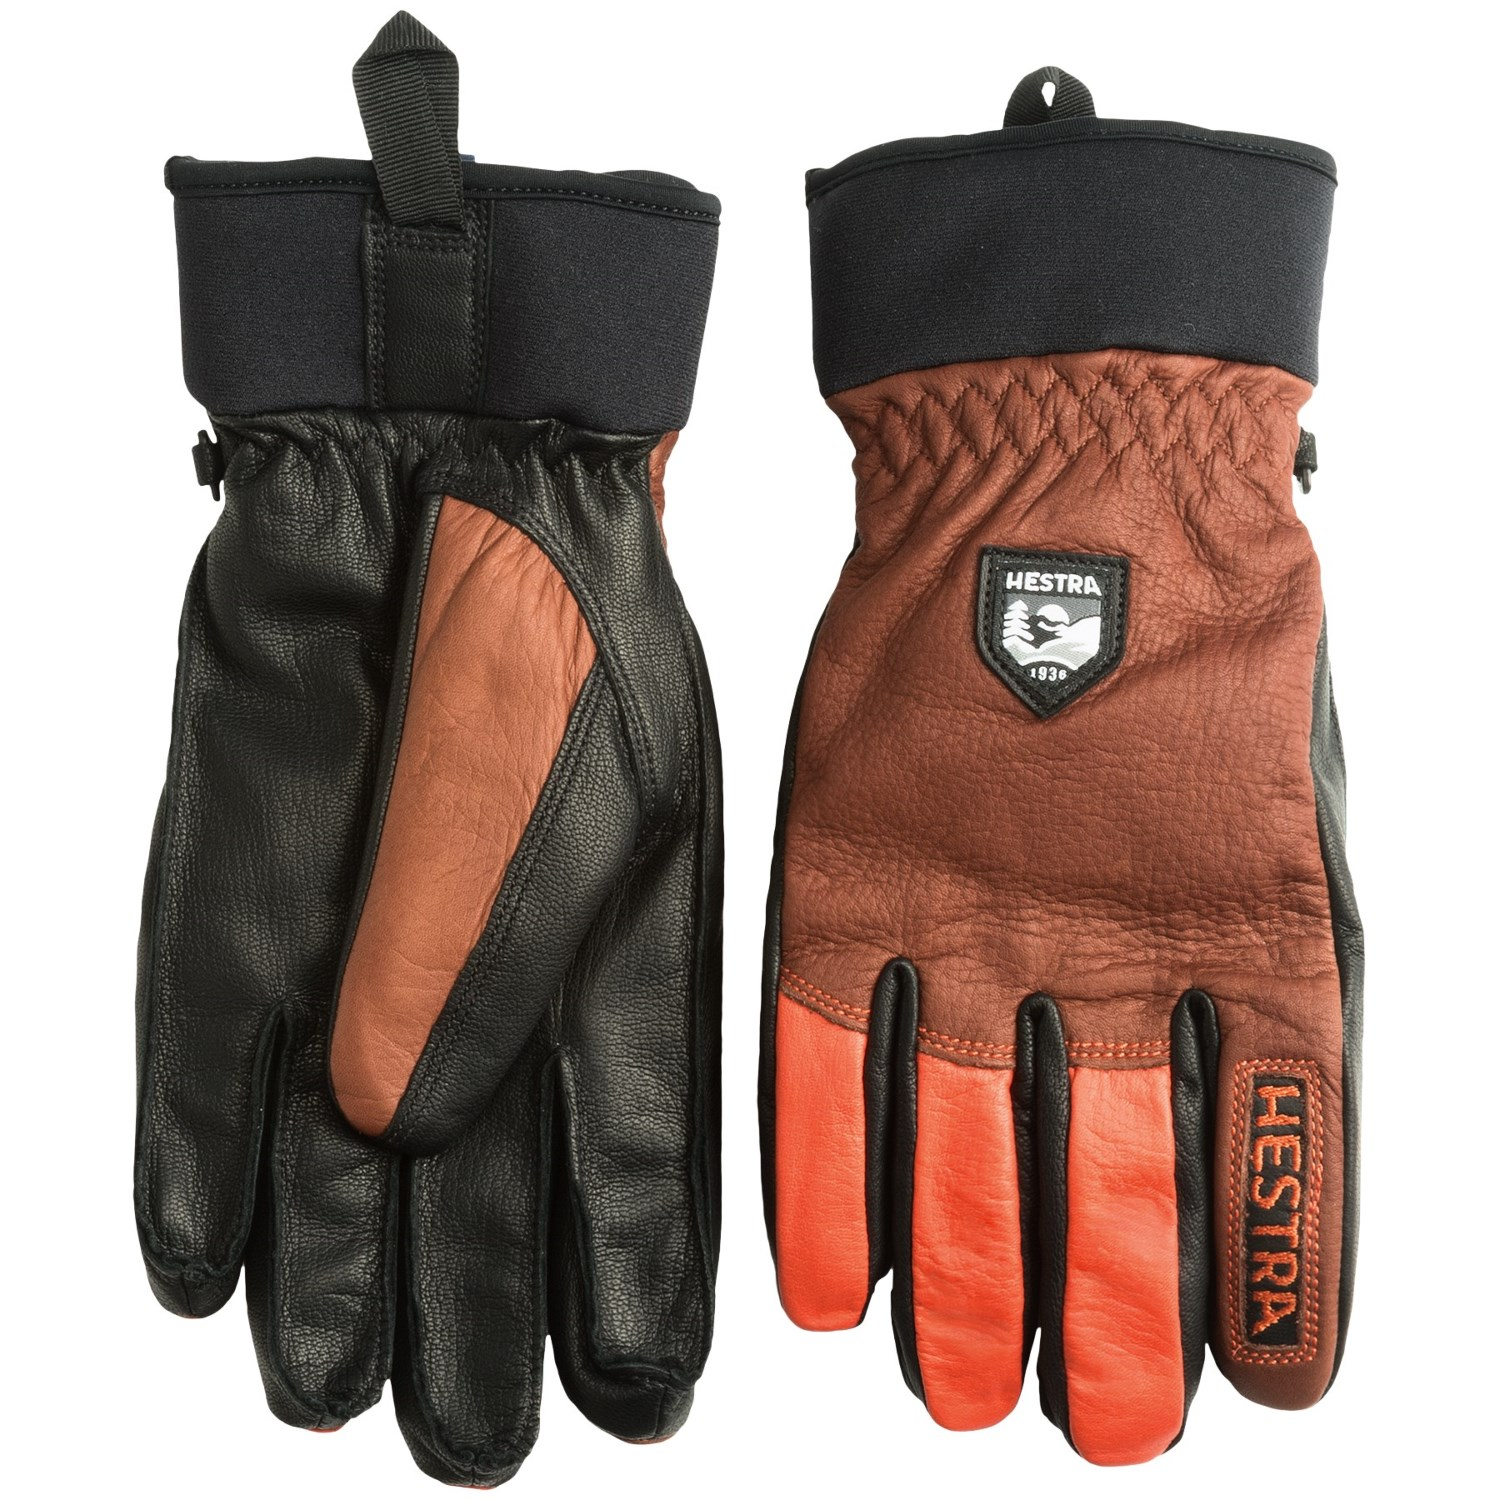 Ladies leather gloves wool lined - Hestra Army Leather Gloves Removable Wool Lining For Men And Women Click To Expand